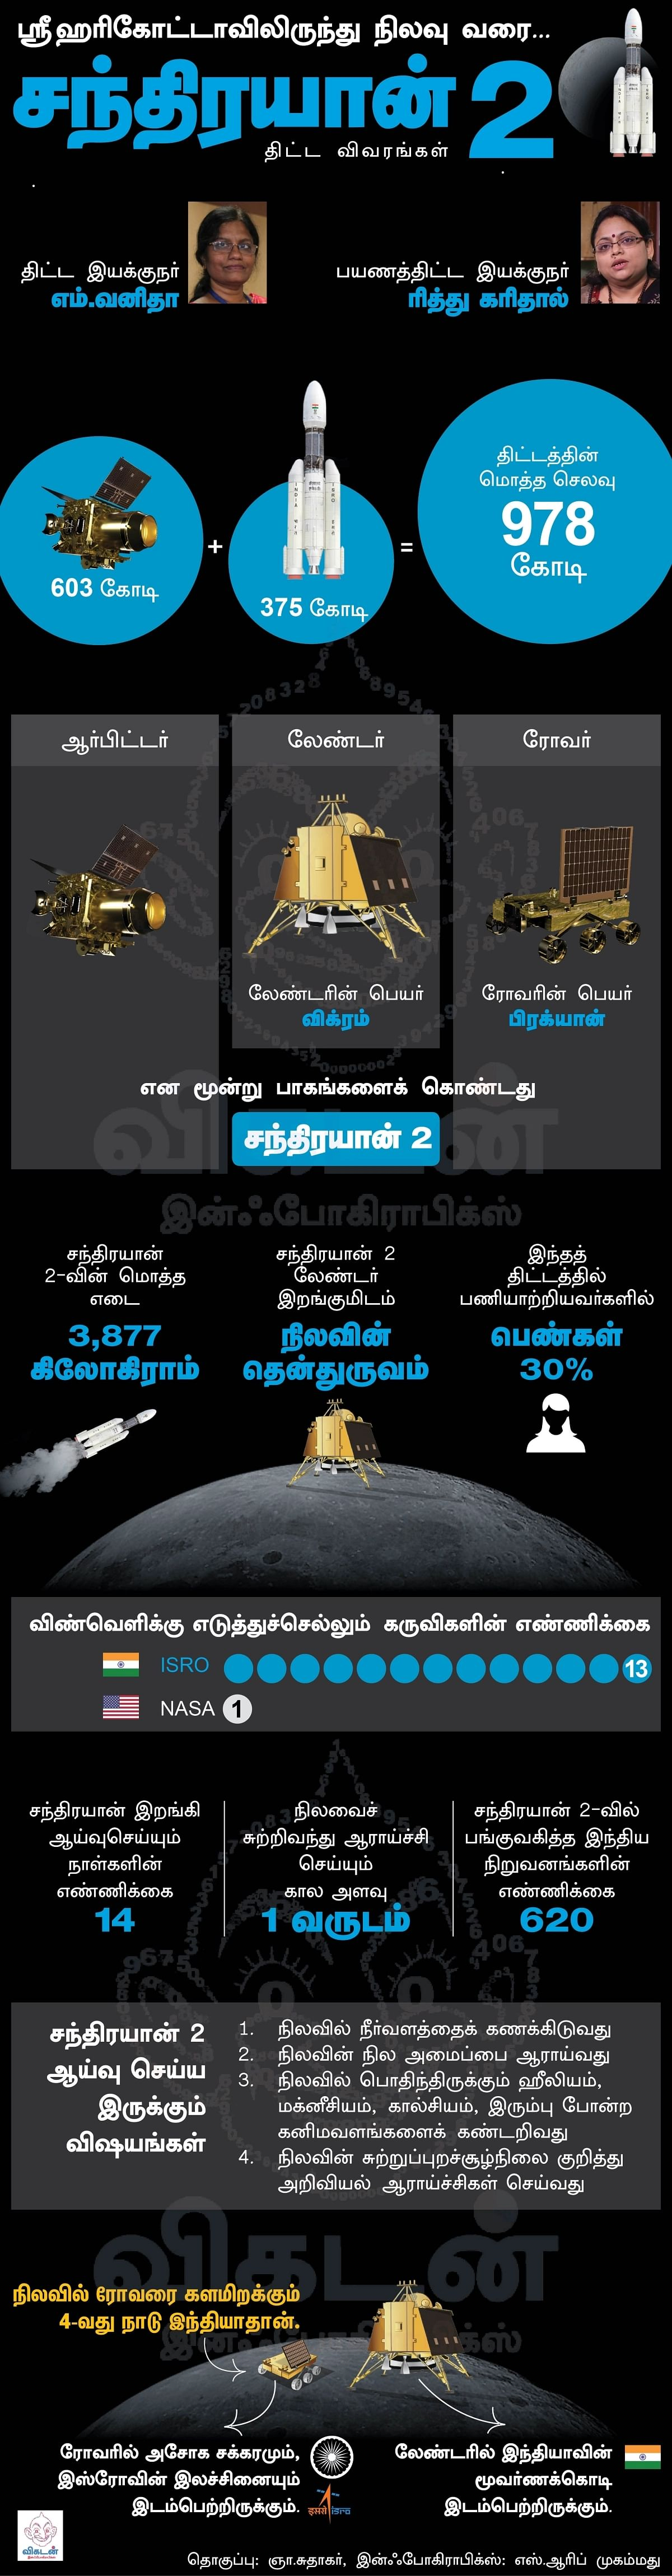 Chandrayaan 2 Mission details